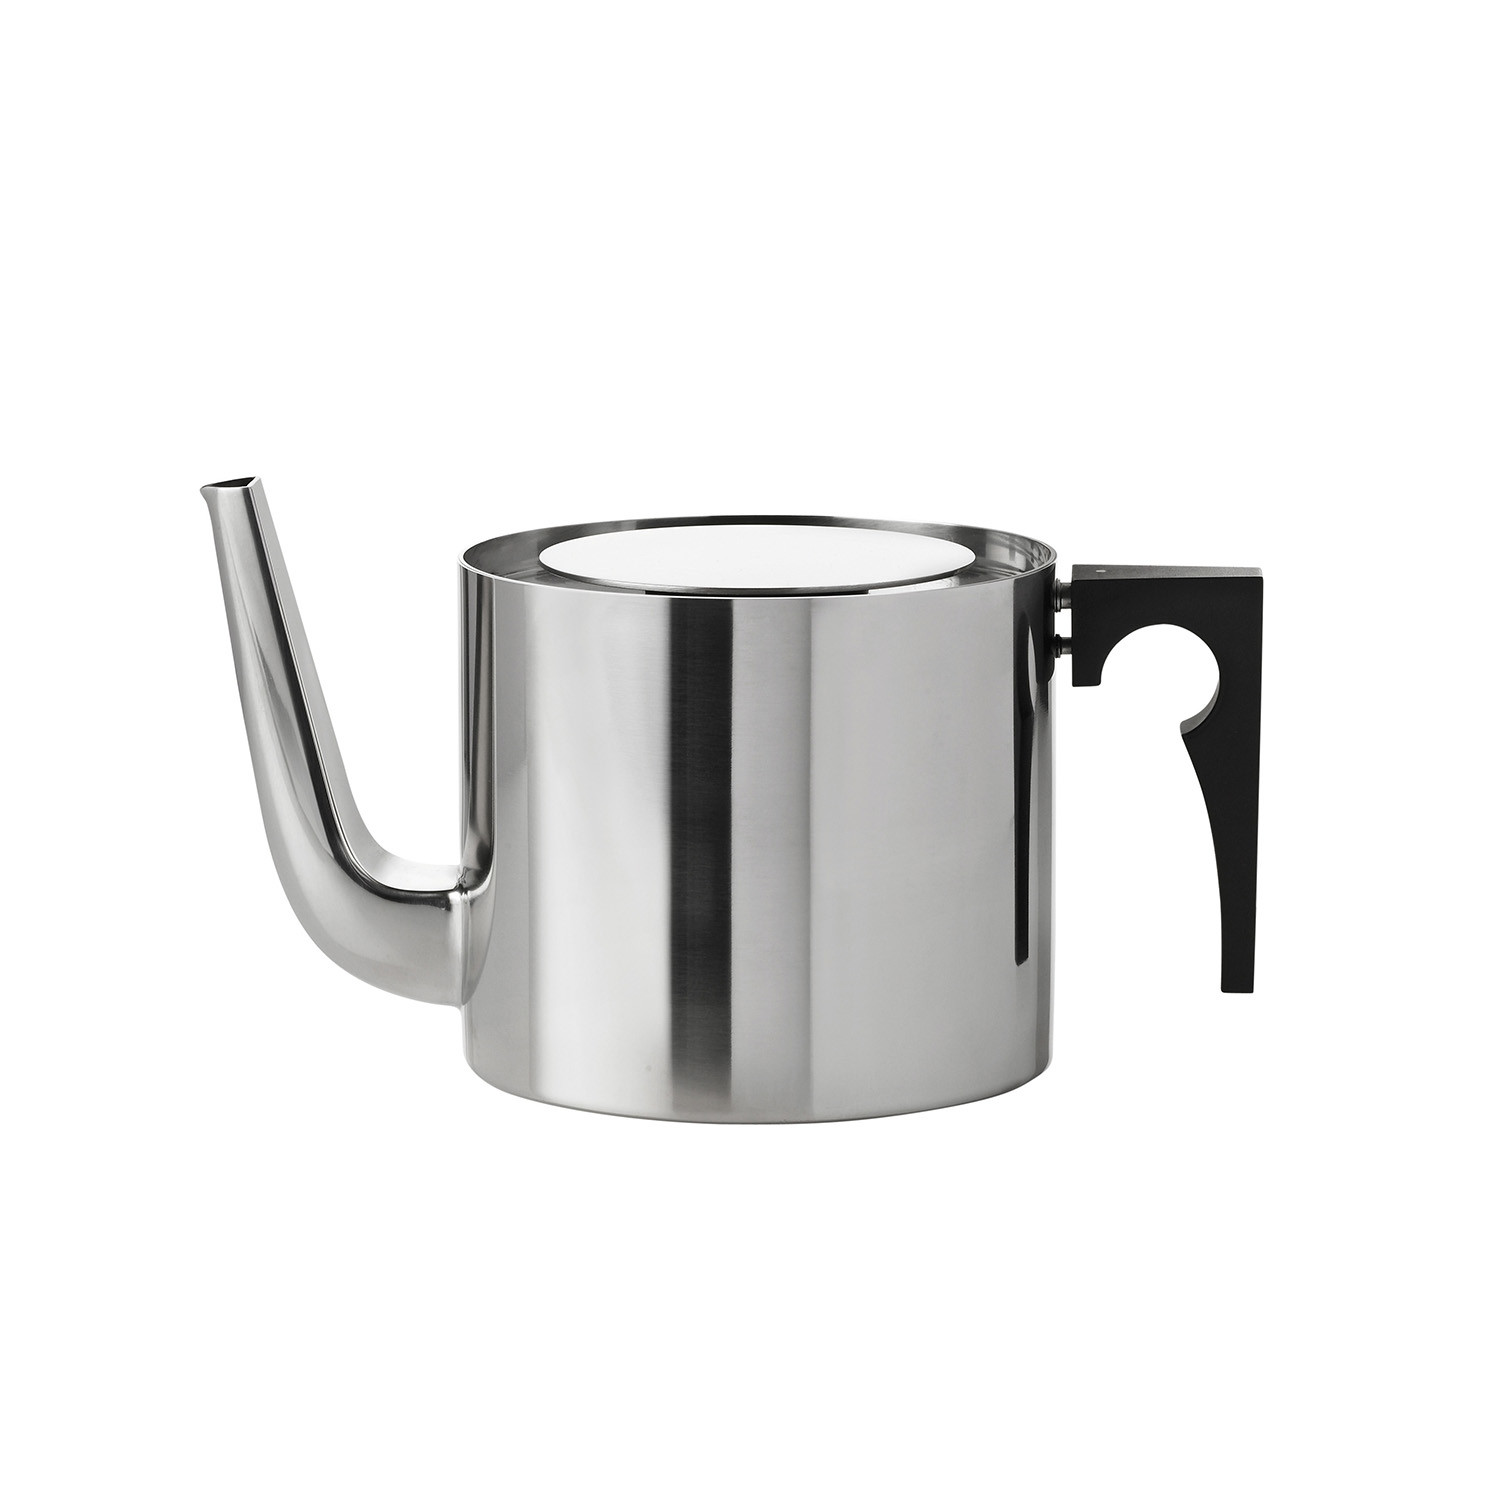 arne jacobsen tea pot stelton touch of modern. Black Bedroom Furniture Sets. Home Design Ideas